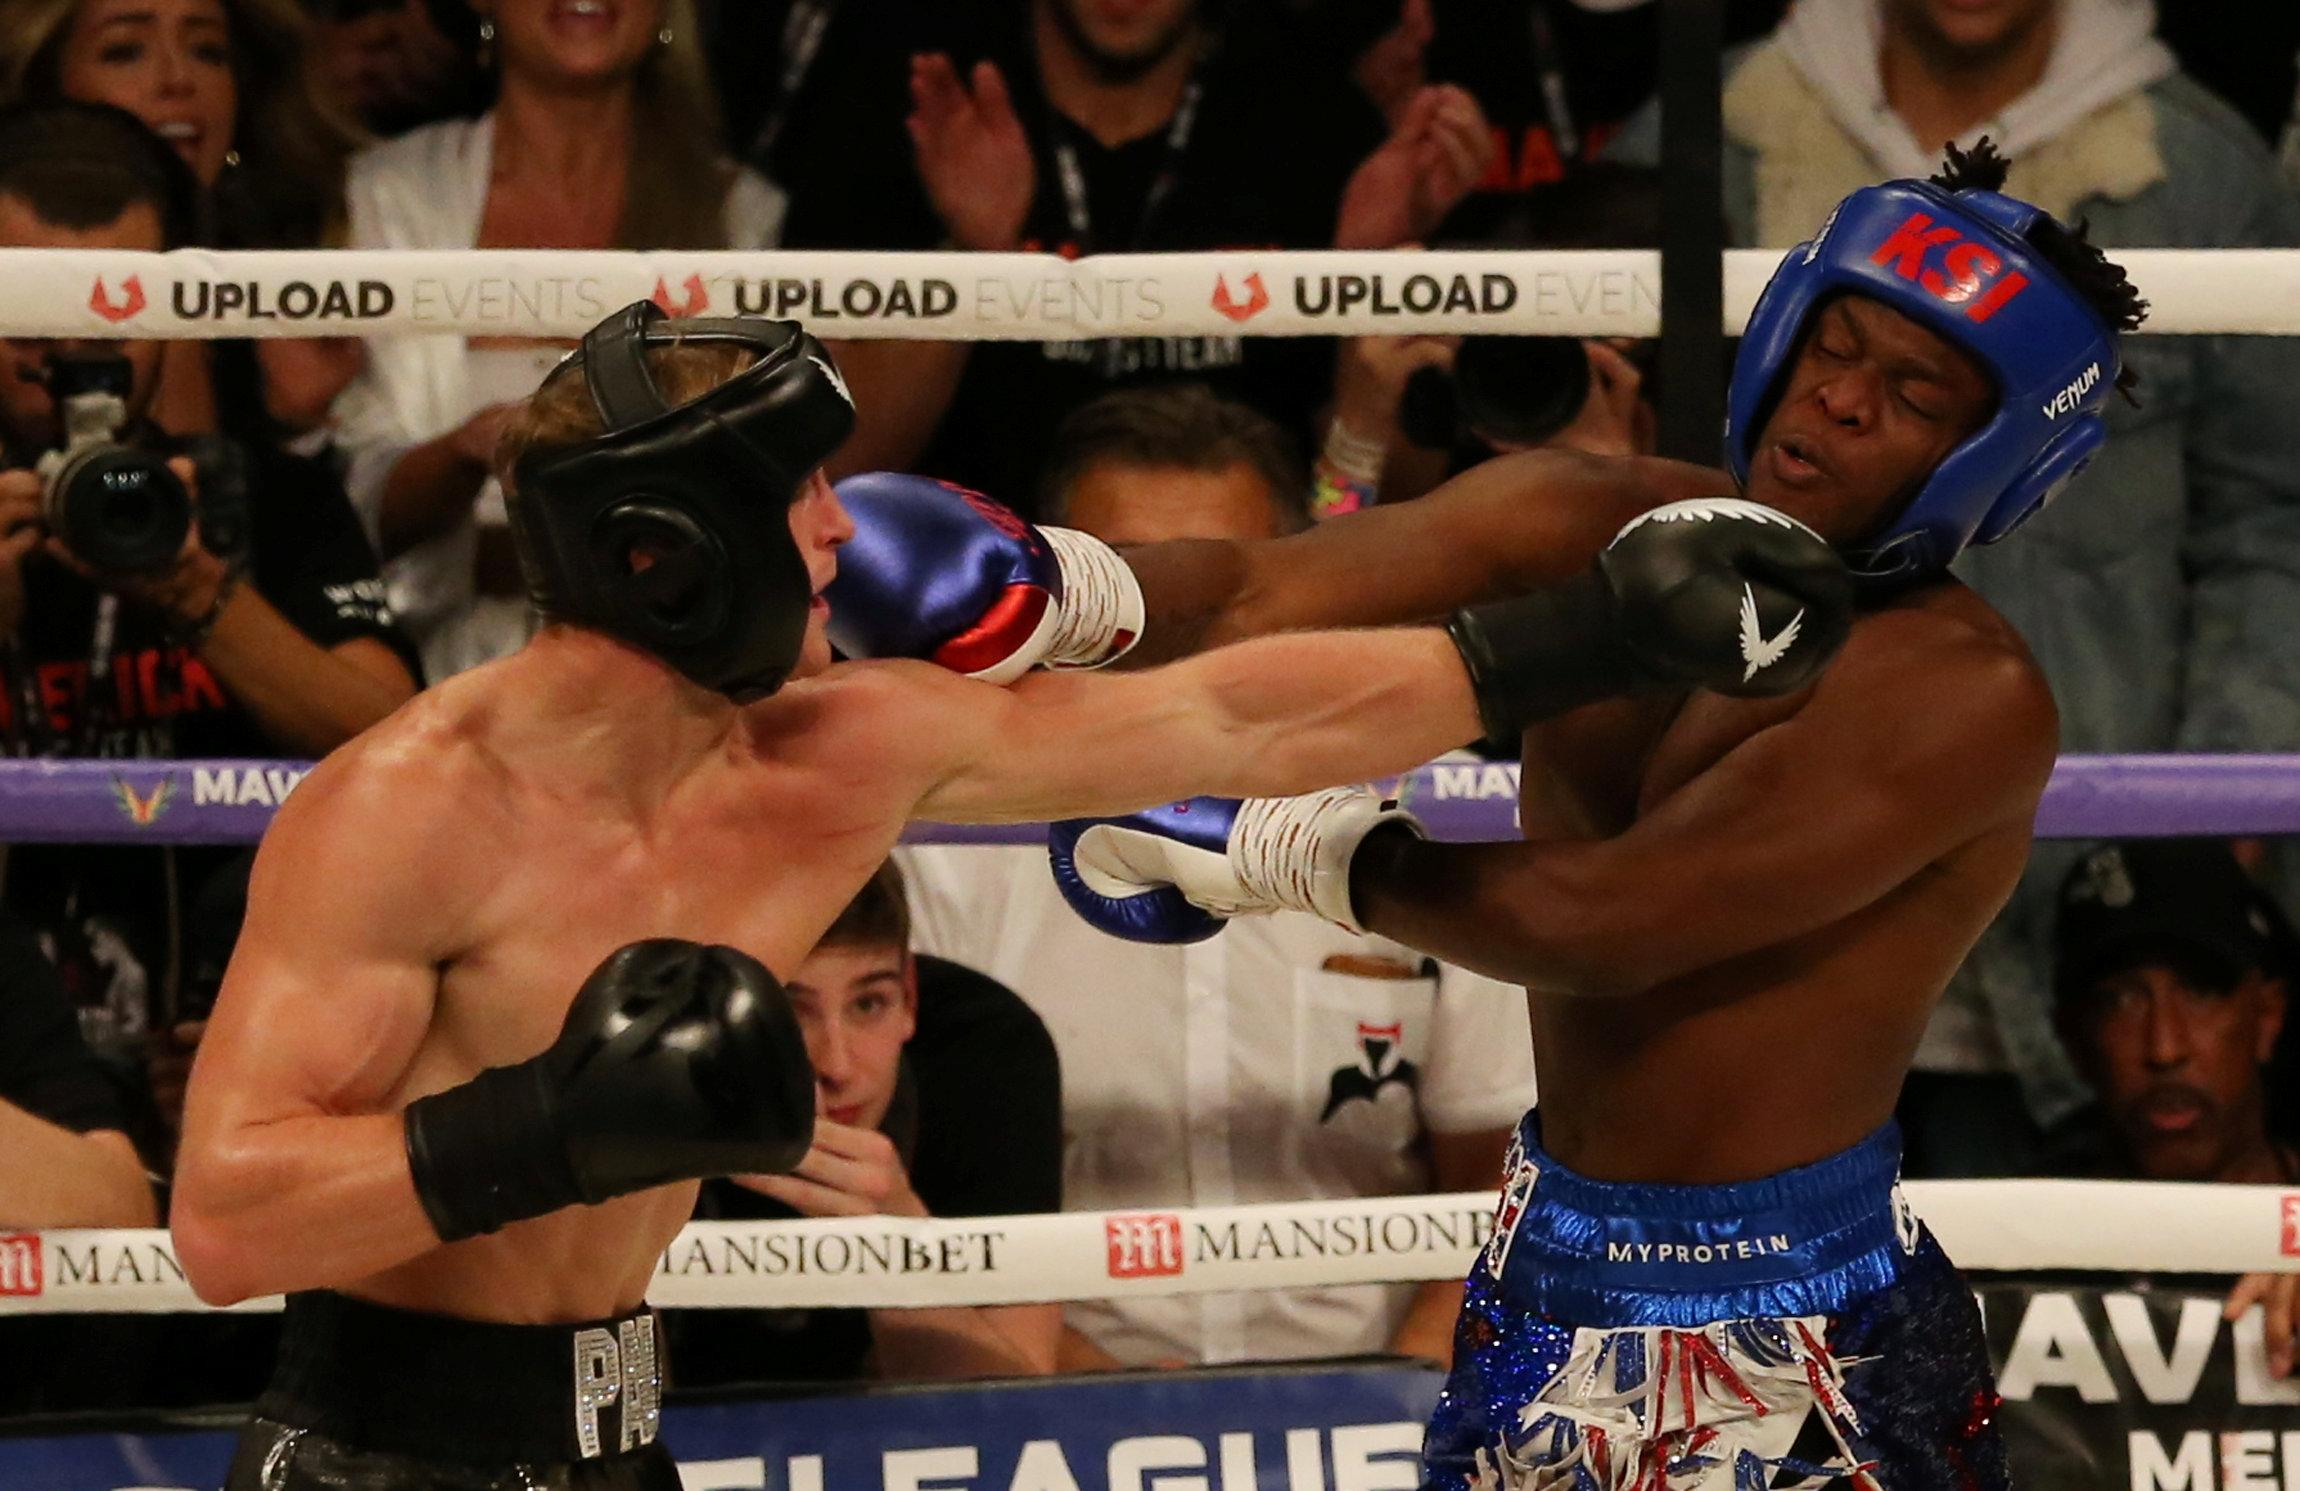 Paul Logan bashed up KSI but the draw means a rematch is planned